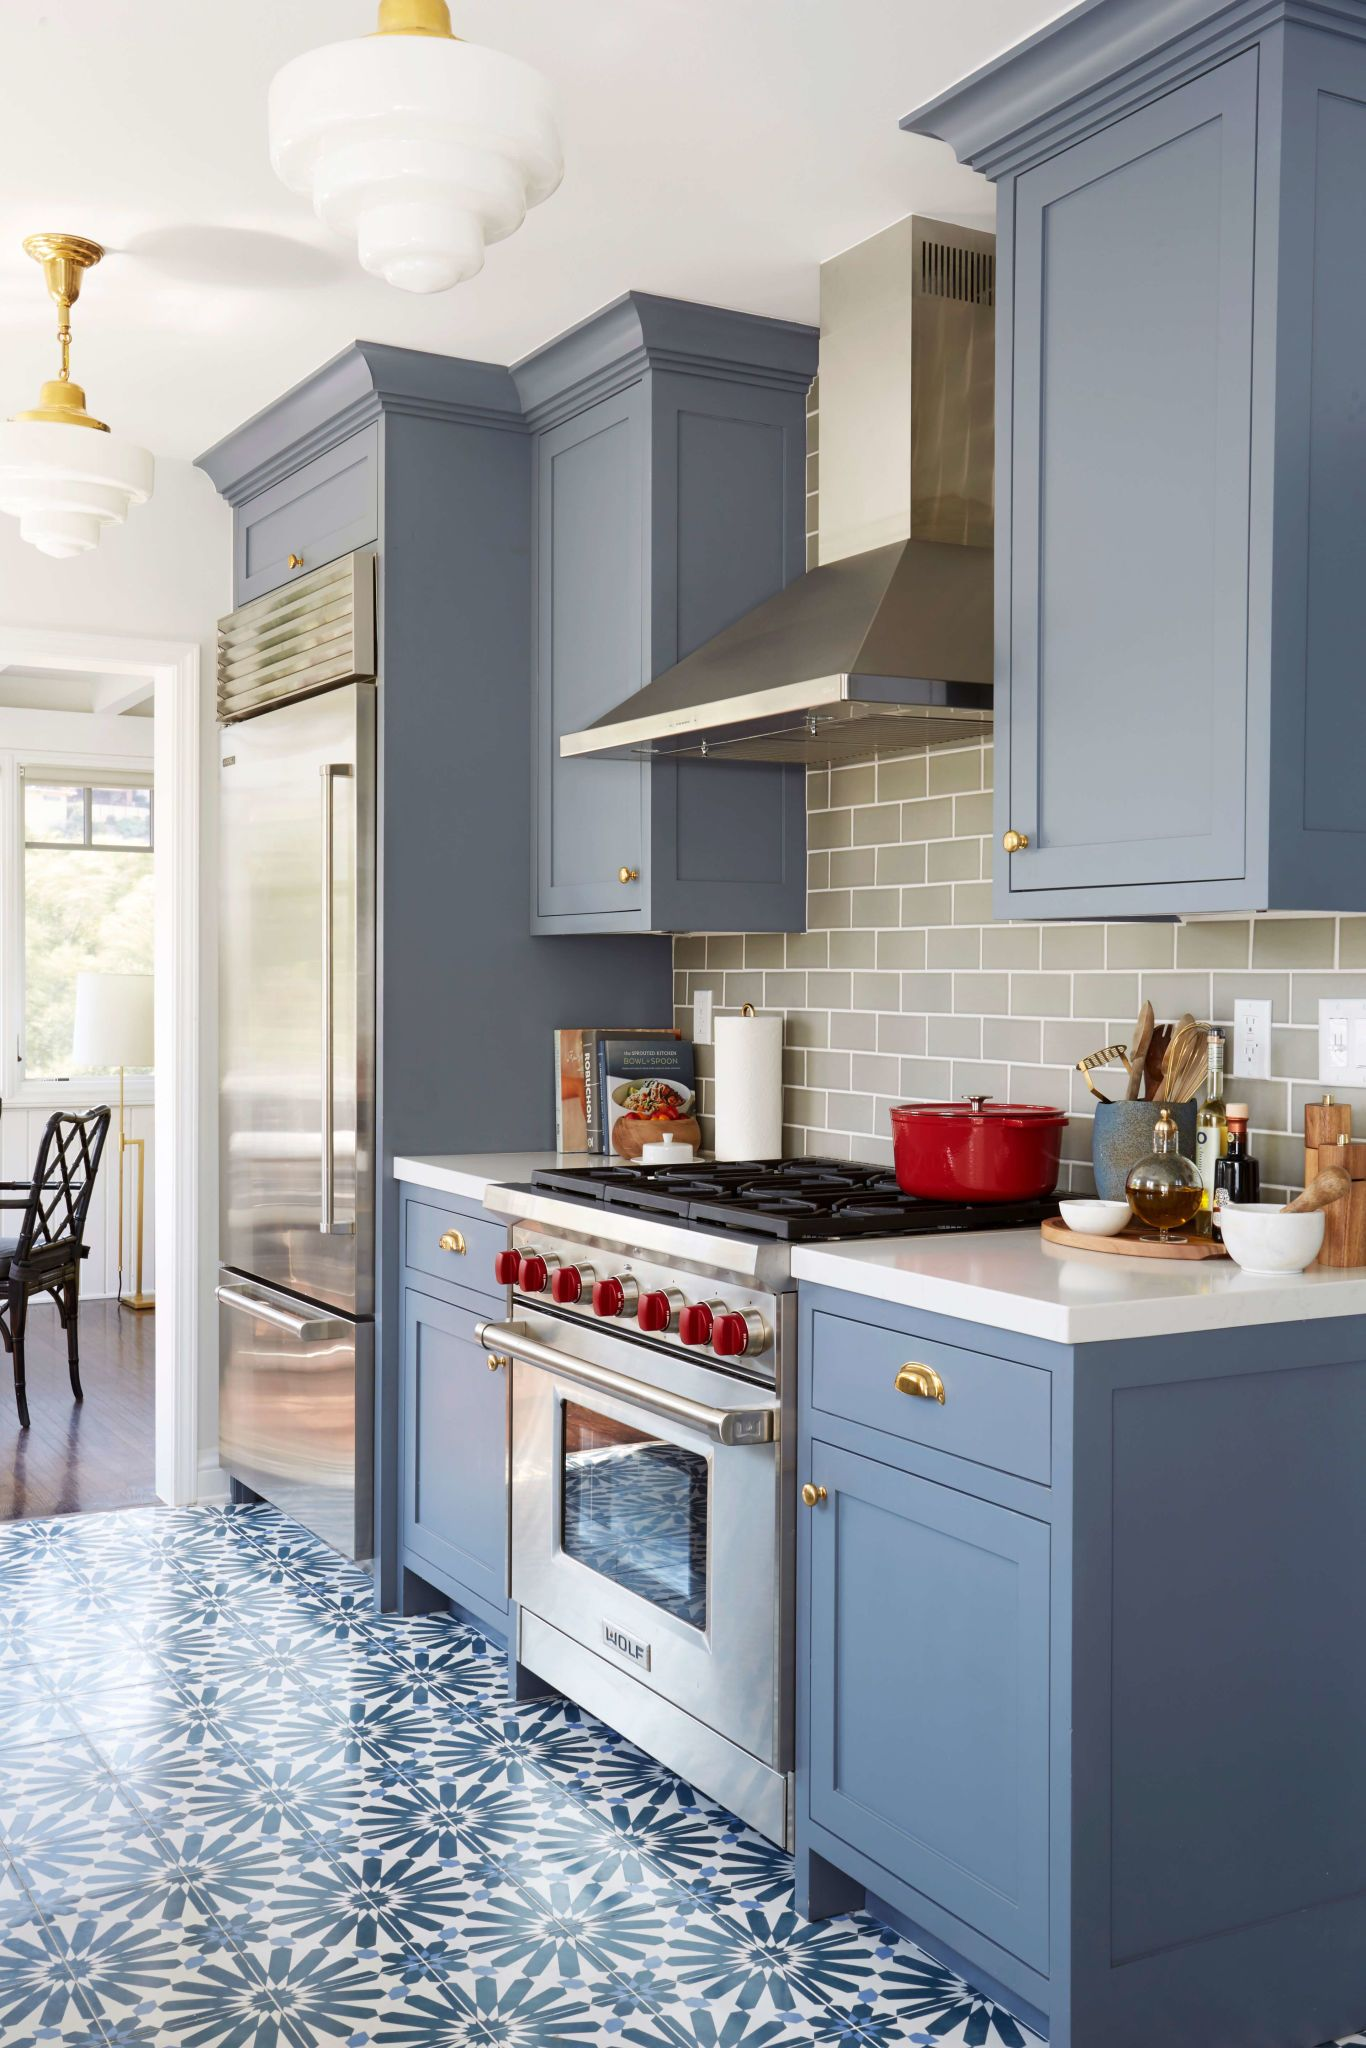 Modern Deco Kitchen Reveal For The Home Pinterest Kitchen